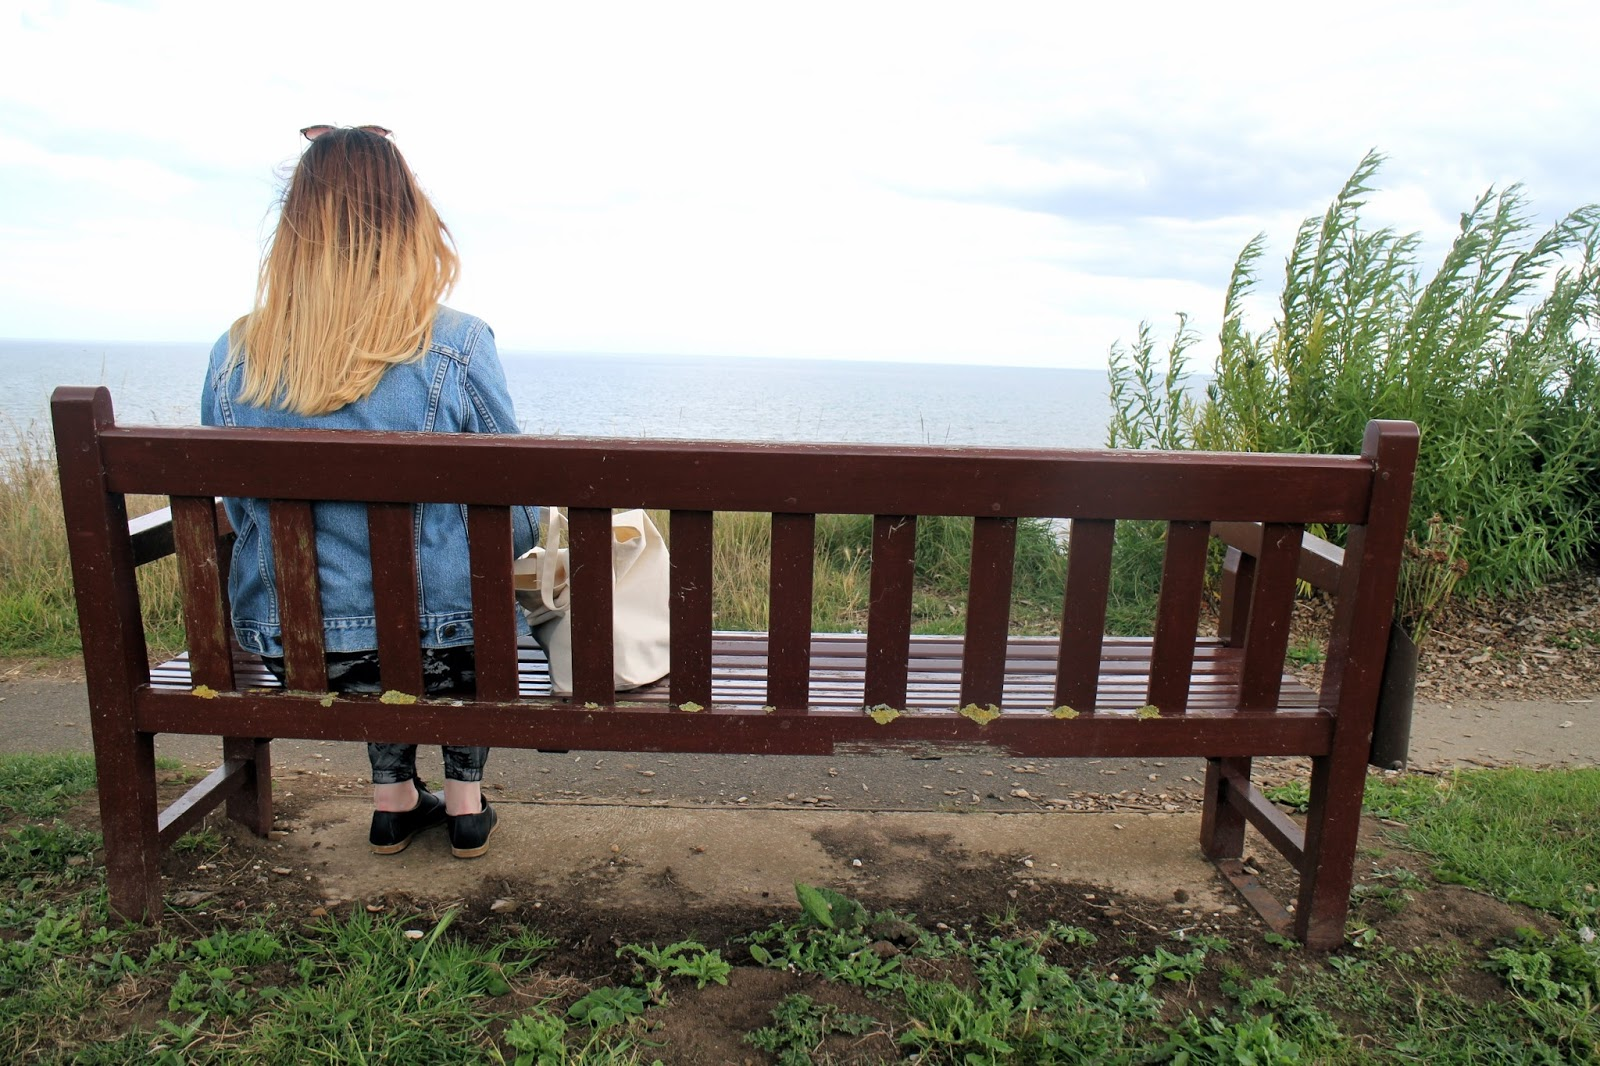 Bridlington - View of girl on bench at the East Yorkshire coast